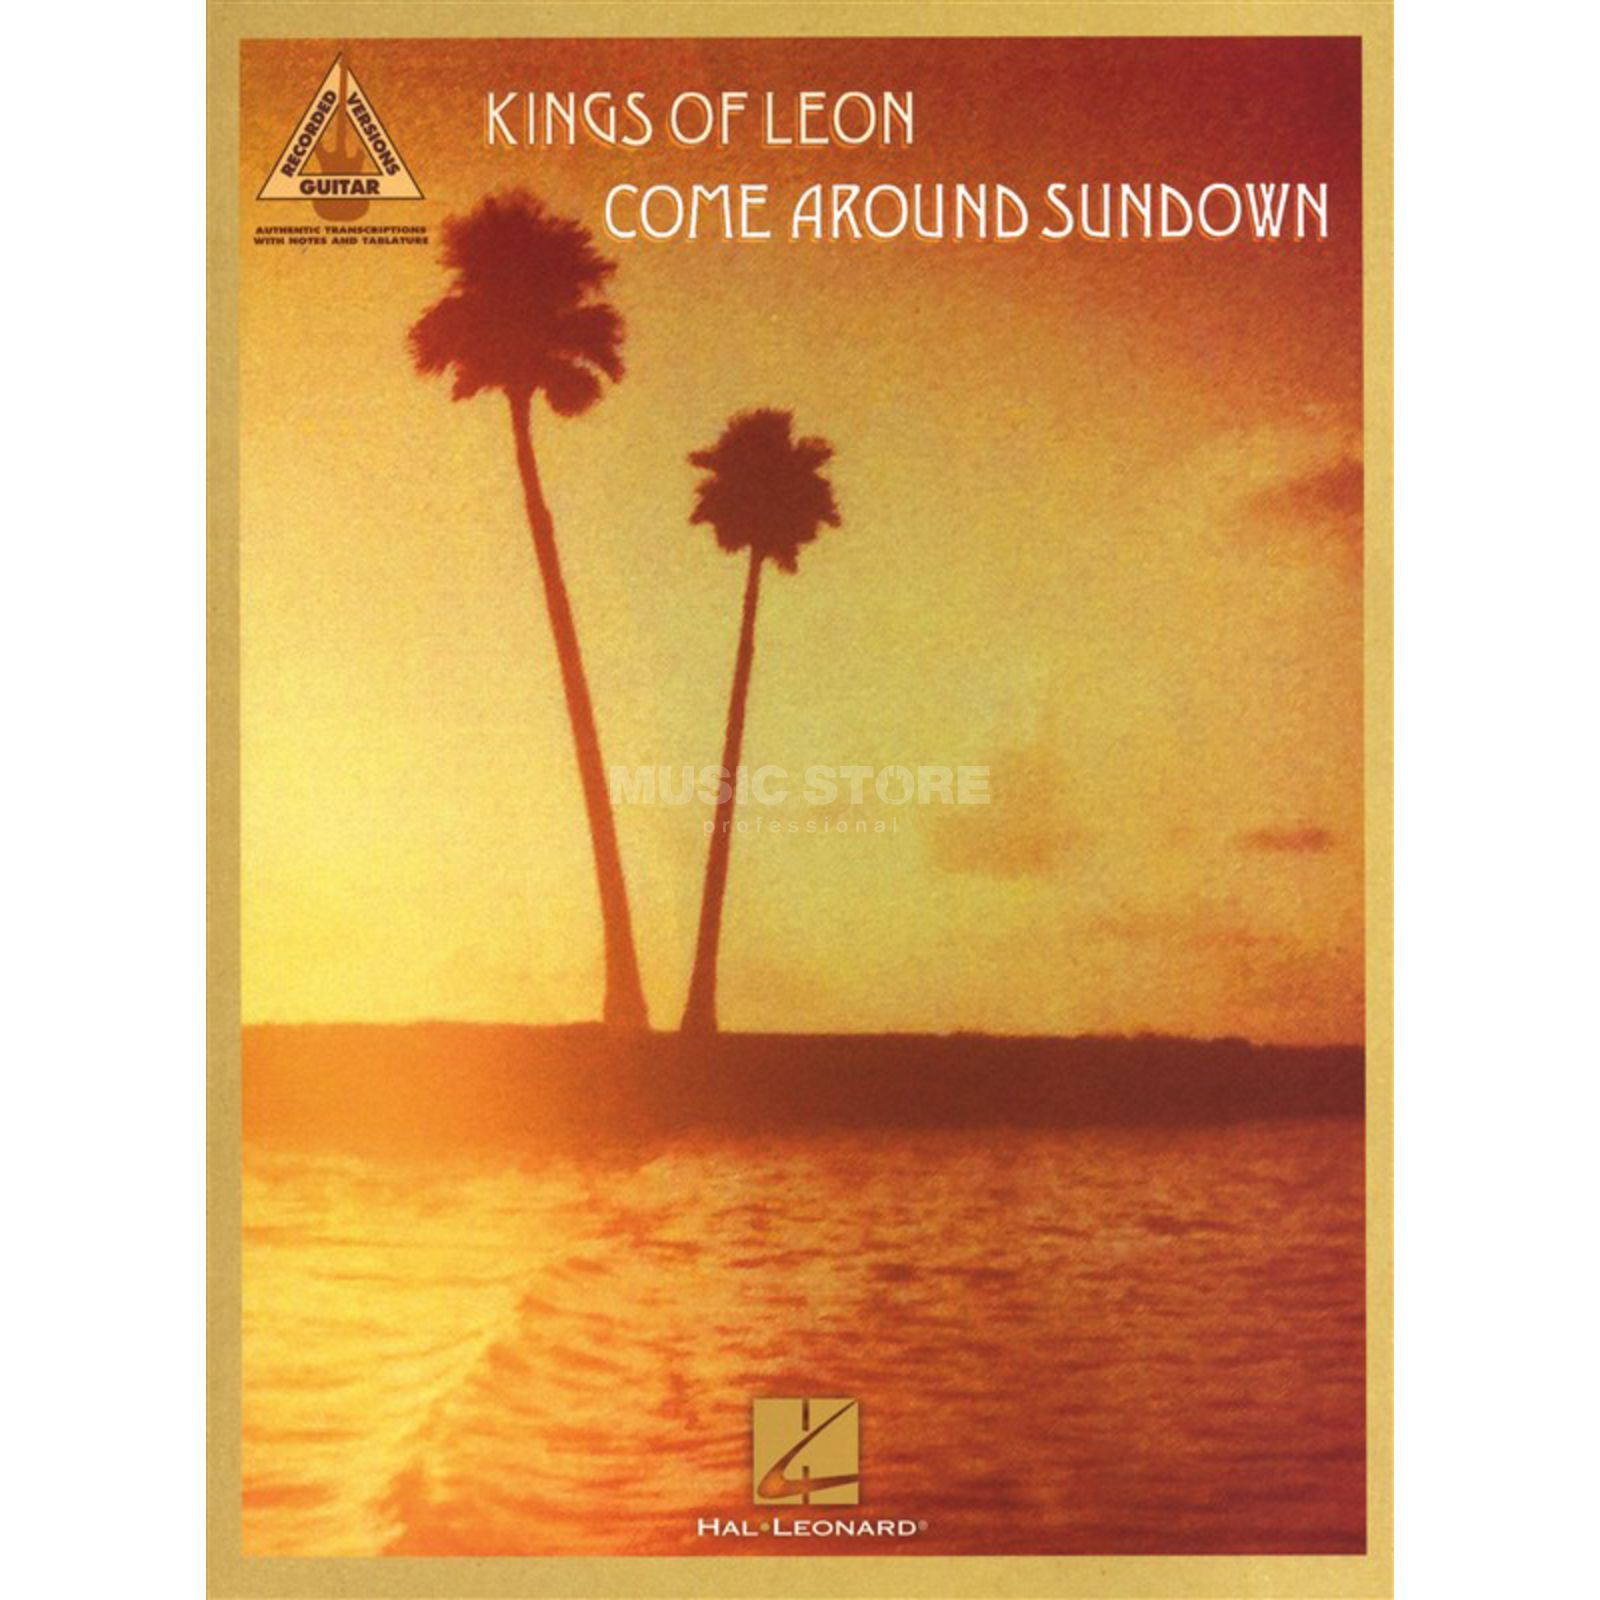 Hal Leonard Kings Of Leon: Come Around Sundown Produktbillede